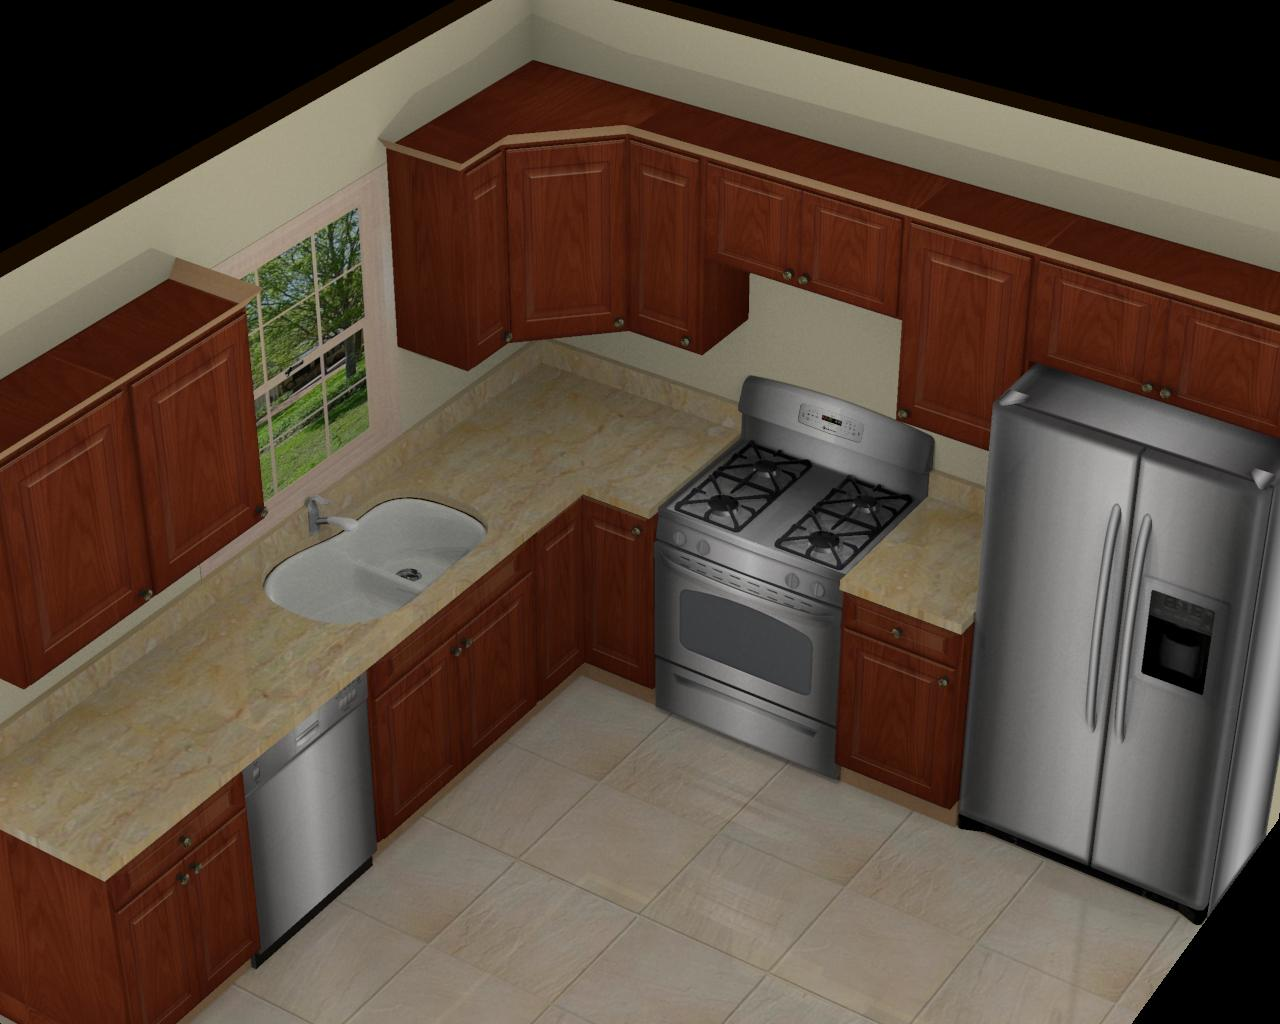 Foundation dezin decor 3d kitchen model design for 5 x 20 kitchen ideas